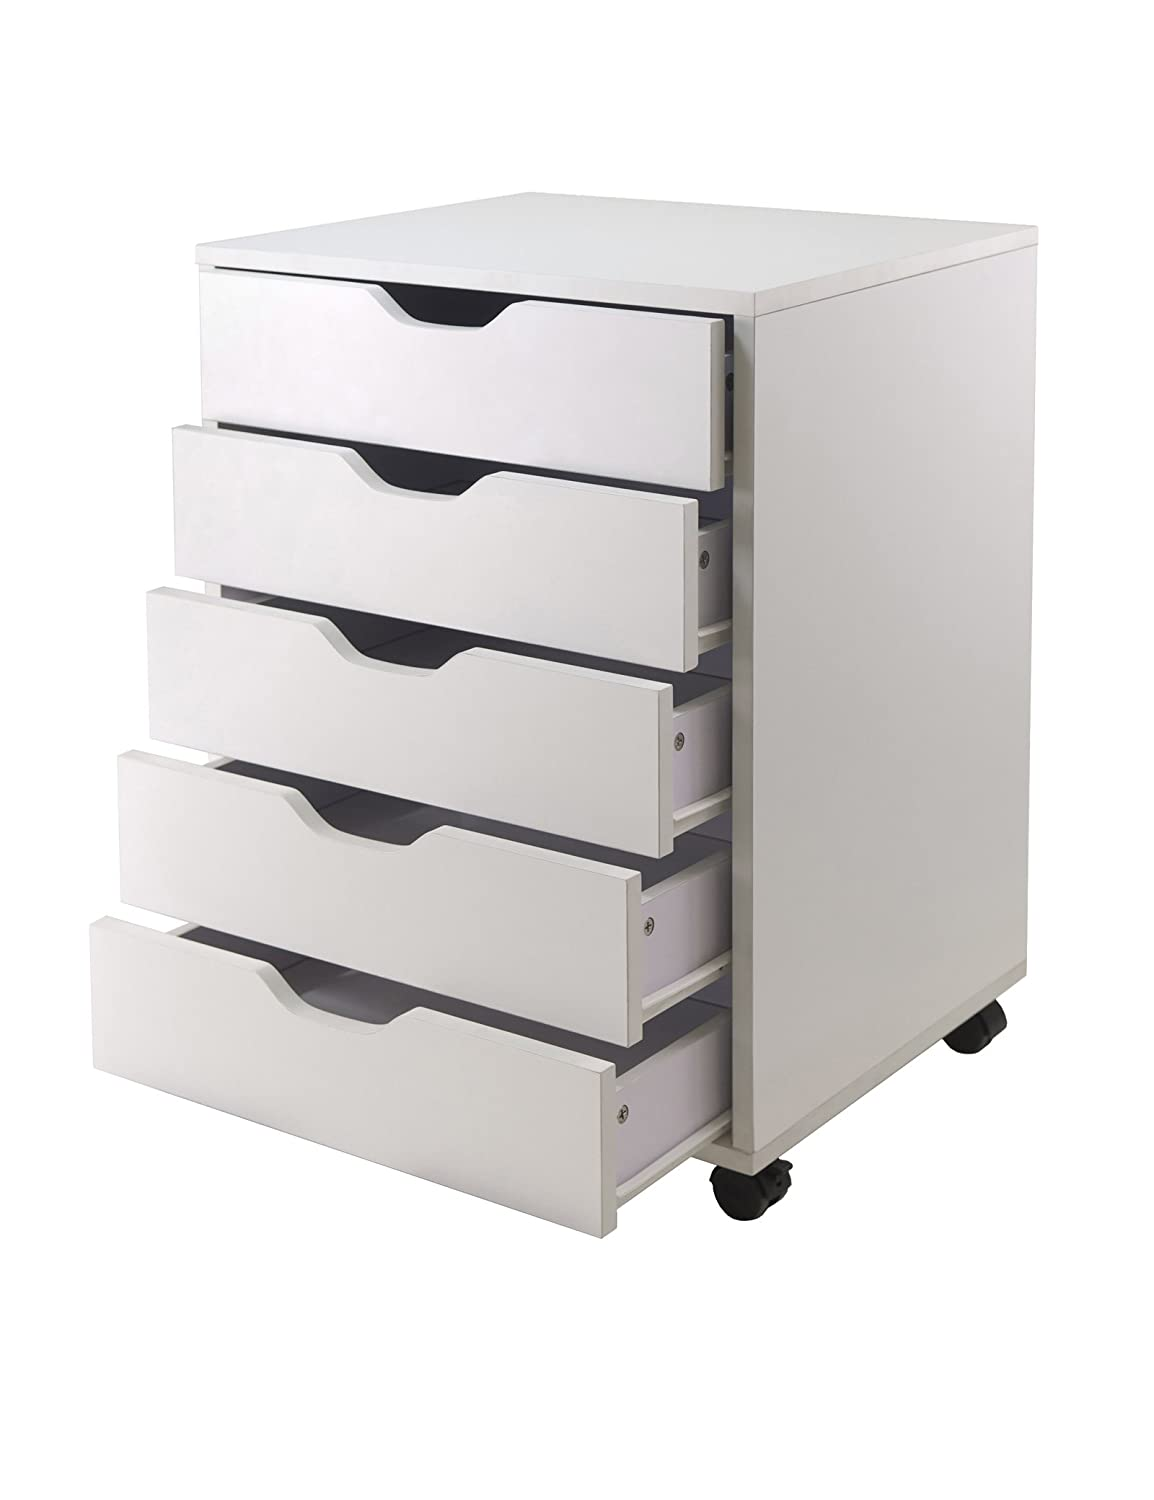 Superieur Amazon.com: Winsome Halifax Cabinet For Closet/Office, 5 Drawers, White:  Kitchen U0026 Dining